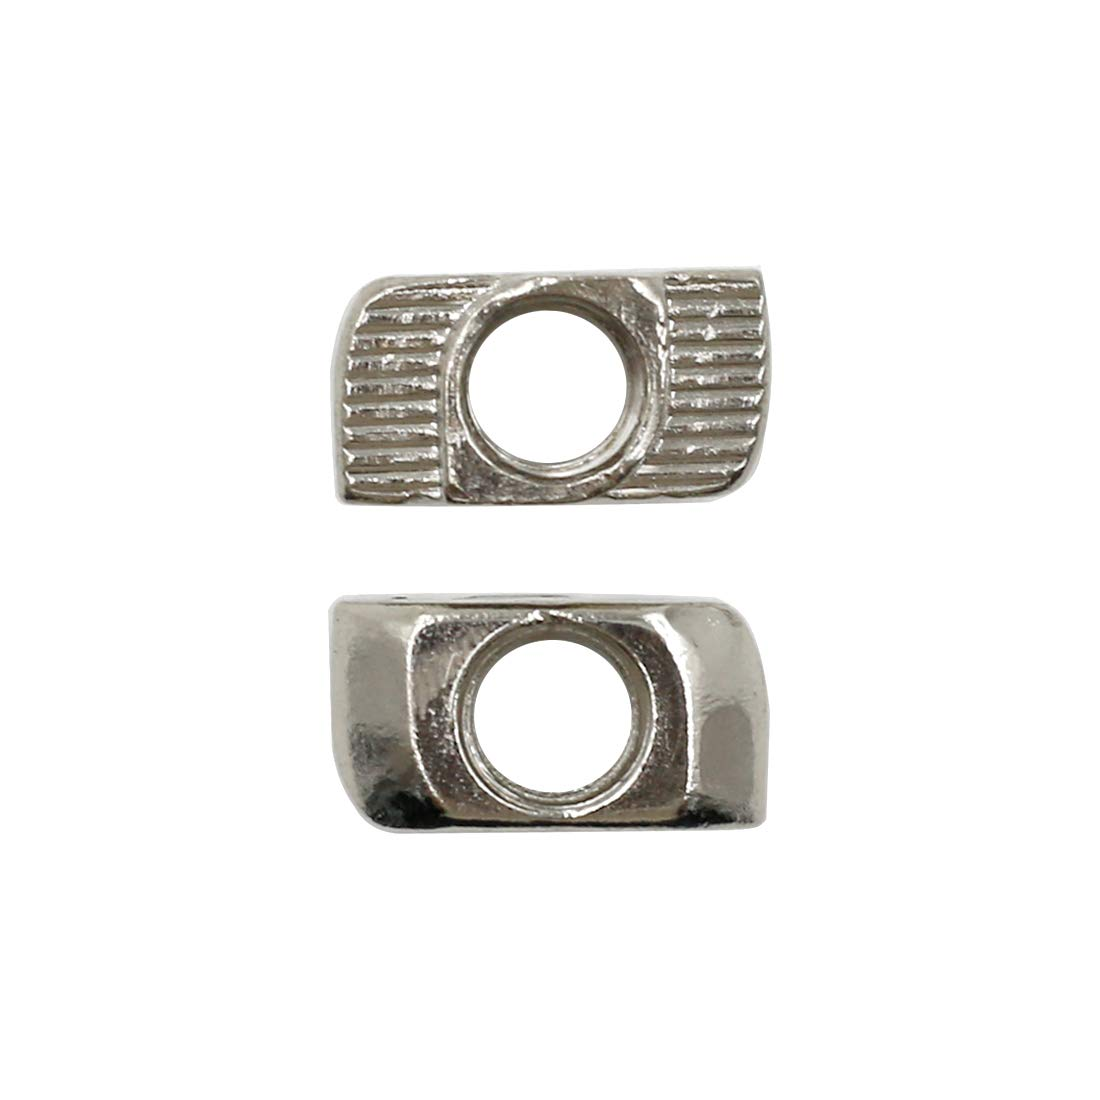 Yoohey 10PCS T Nuts 4545 Series M8 Sliding T Slot Nuts Nickel-Plated Carbon Steel Half Round Roll in T-Nut